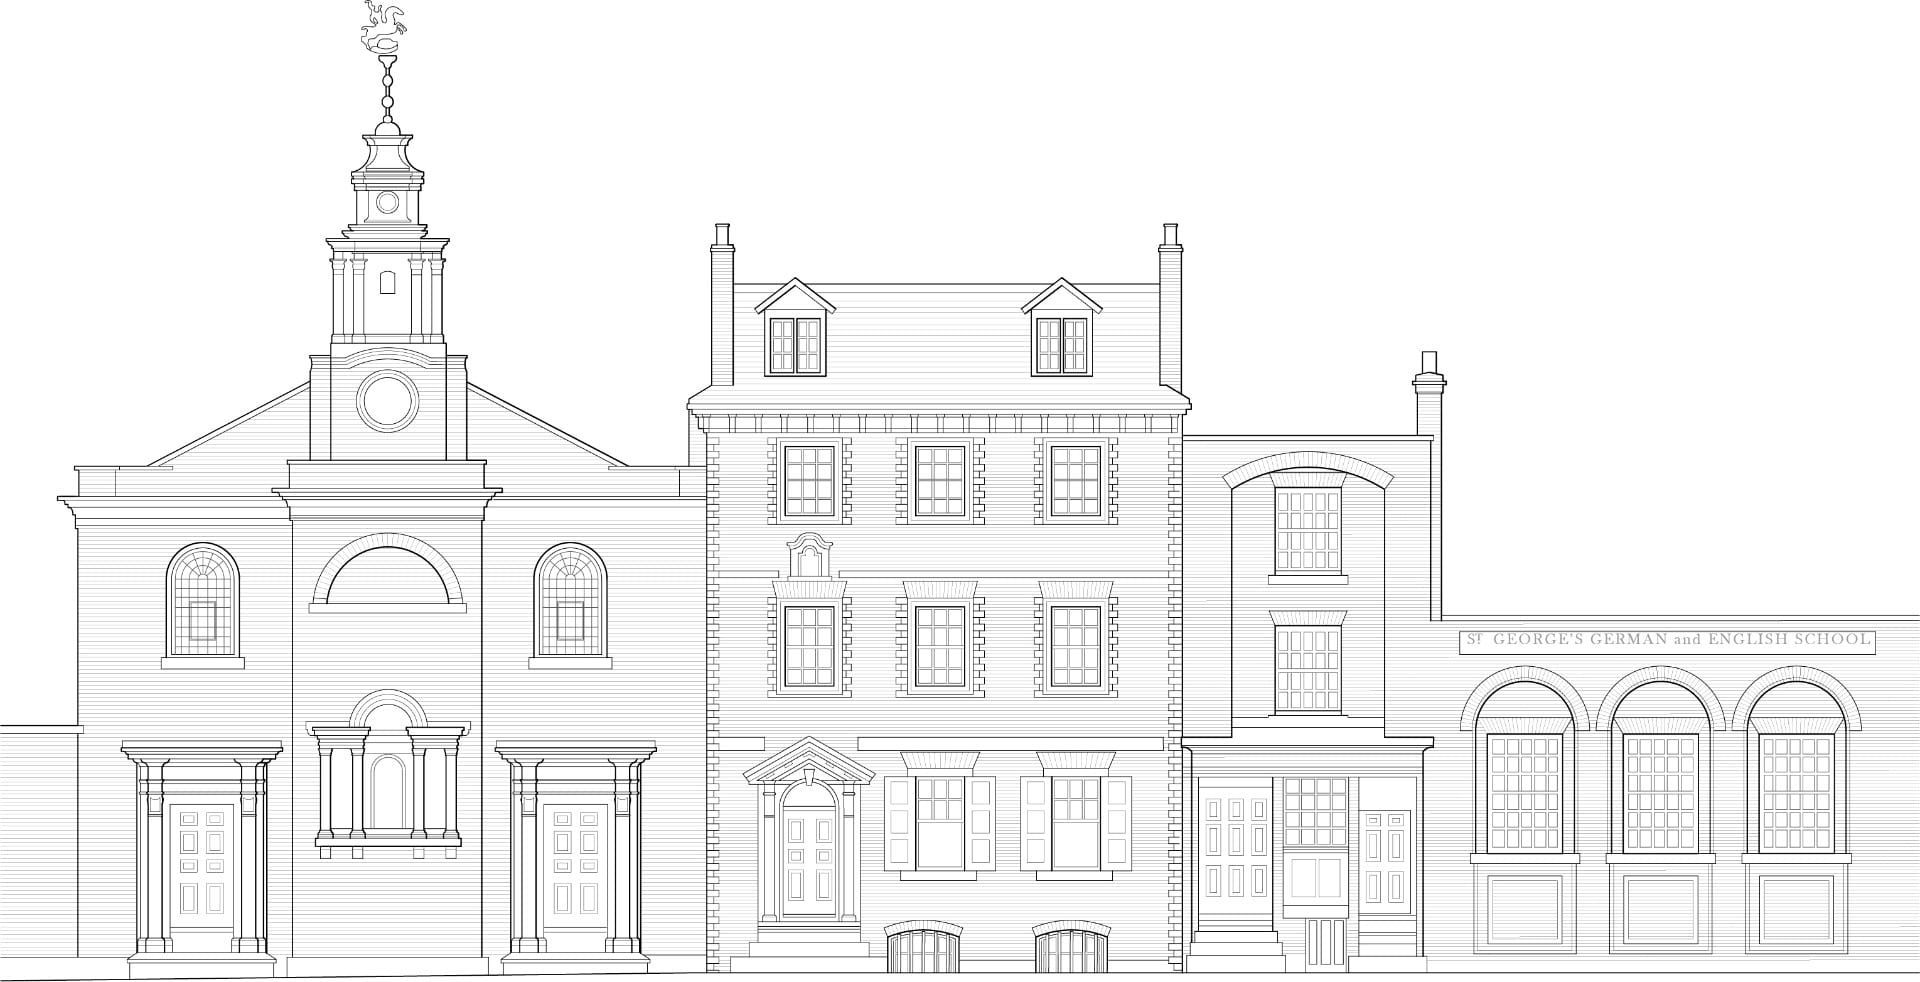 St George's German Lutheran Church and Goodman's Fields |  UCL The Survey of London